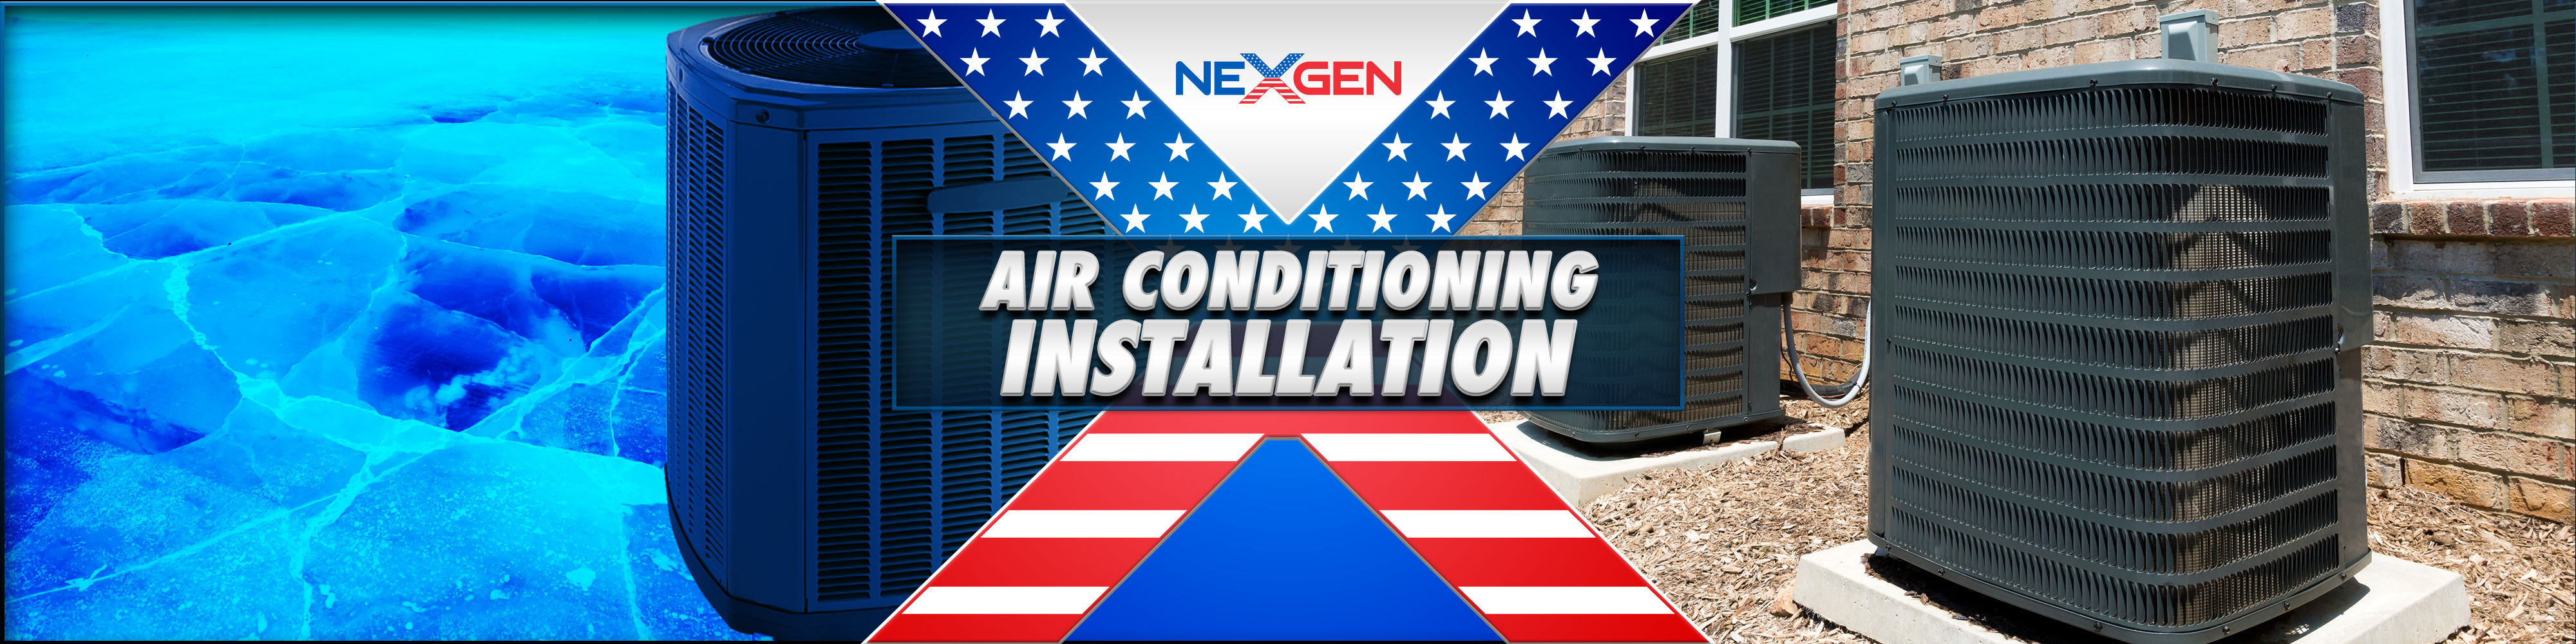 Air Conditioning Installation In Southern California Nexgen Condensing Unit And Refrigeration System Ac Install